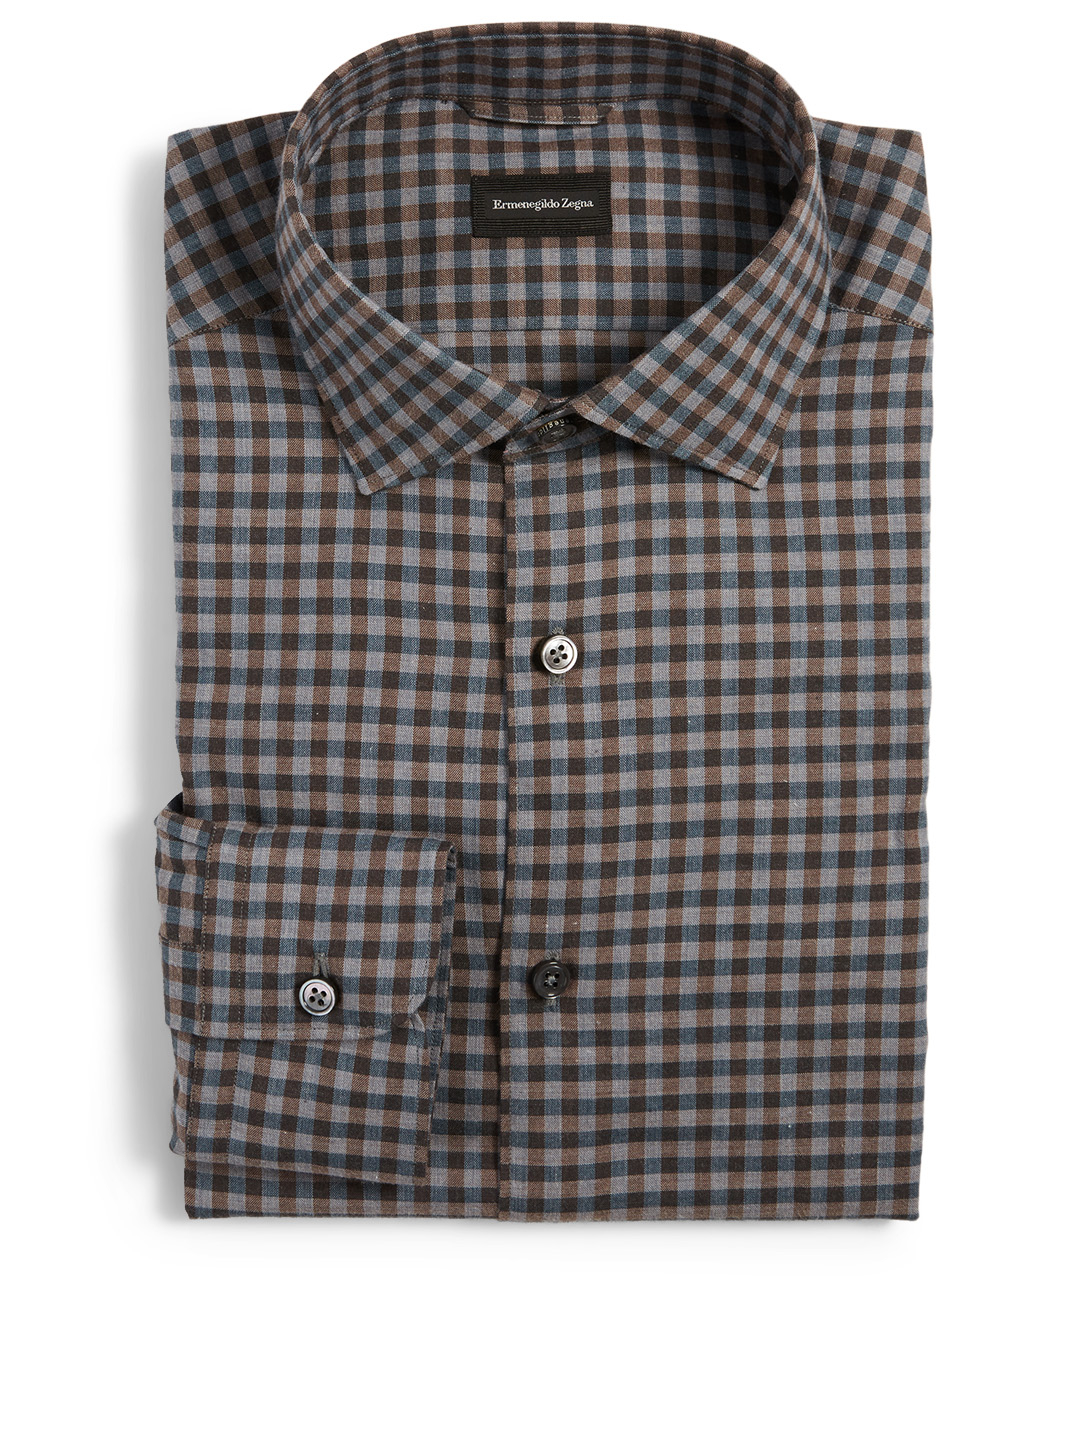 ERMENEGILDO ZEGNA Cotton Shirt In Check Print Men's Multi